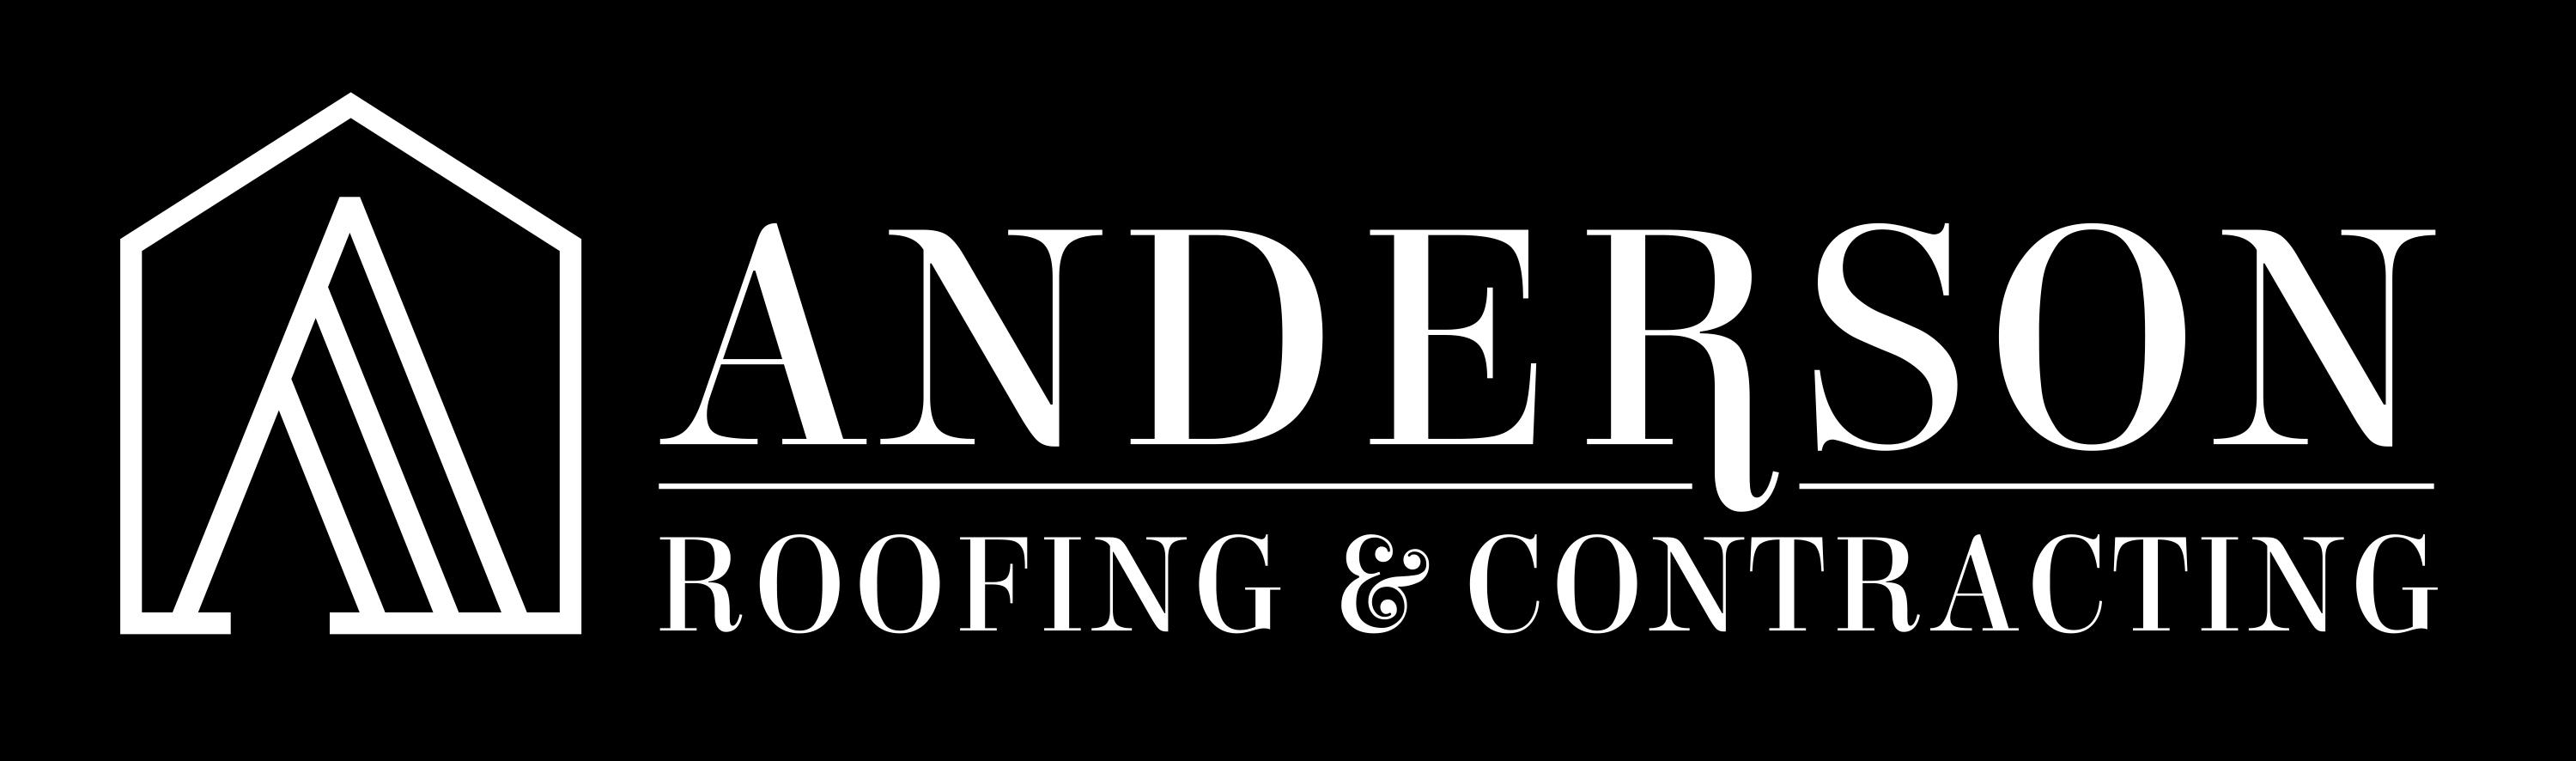 Anderson Roofing & Contracting